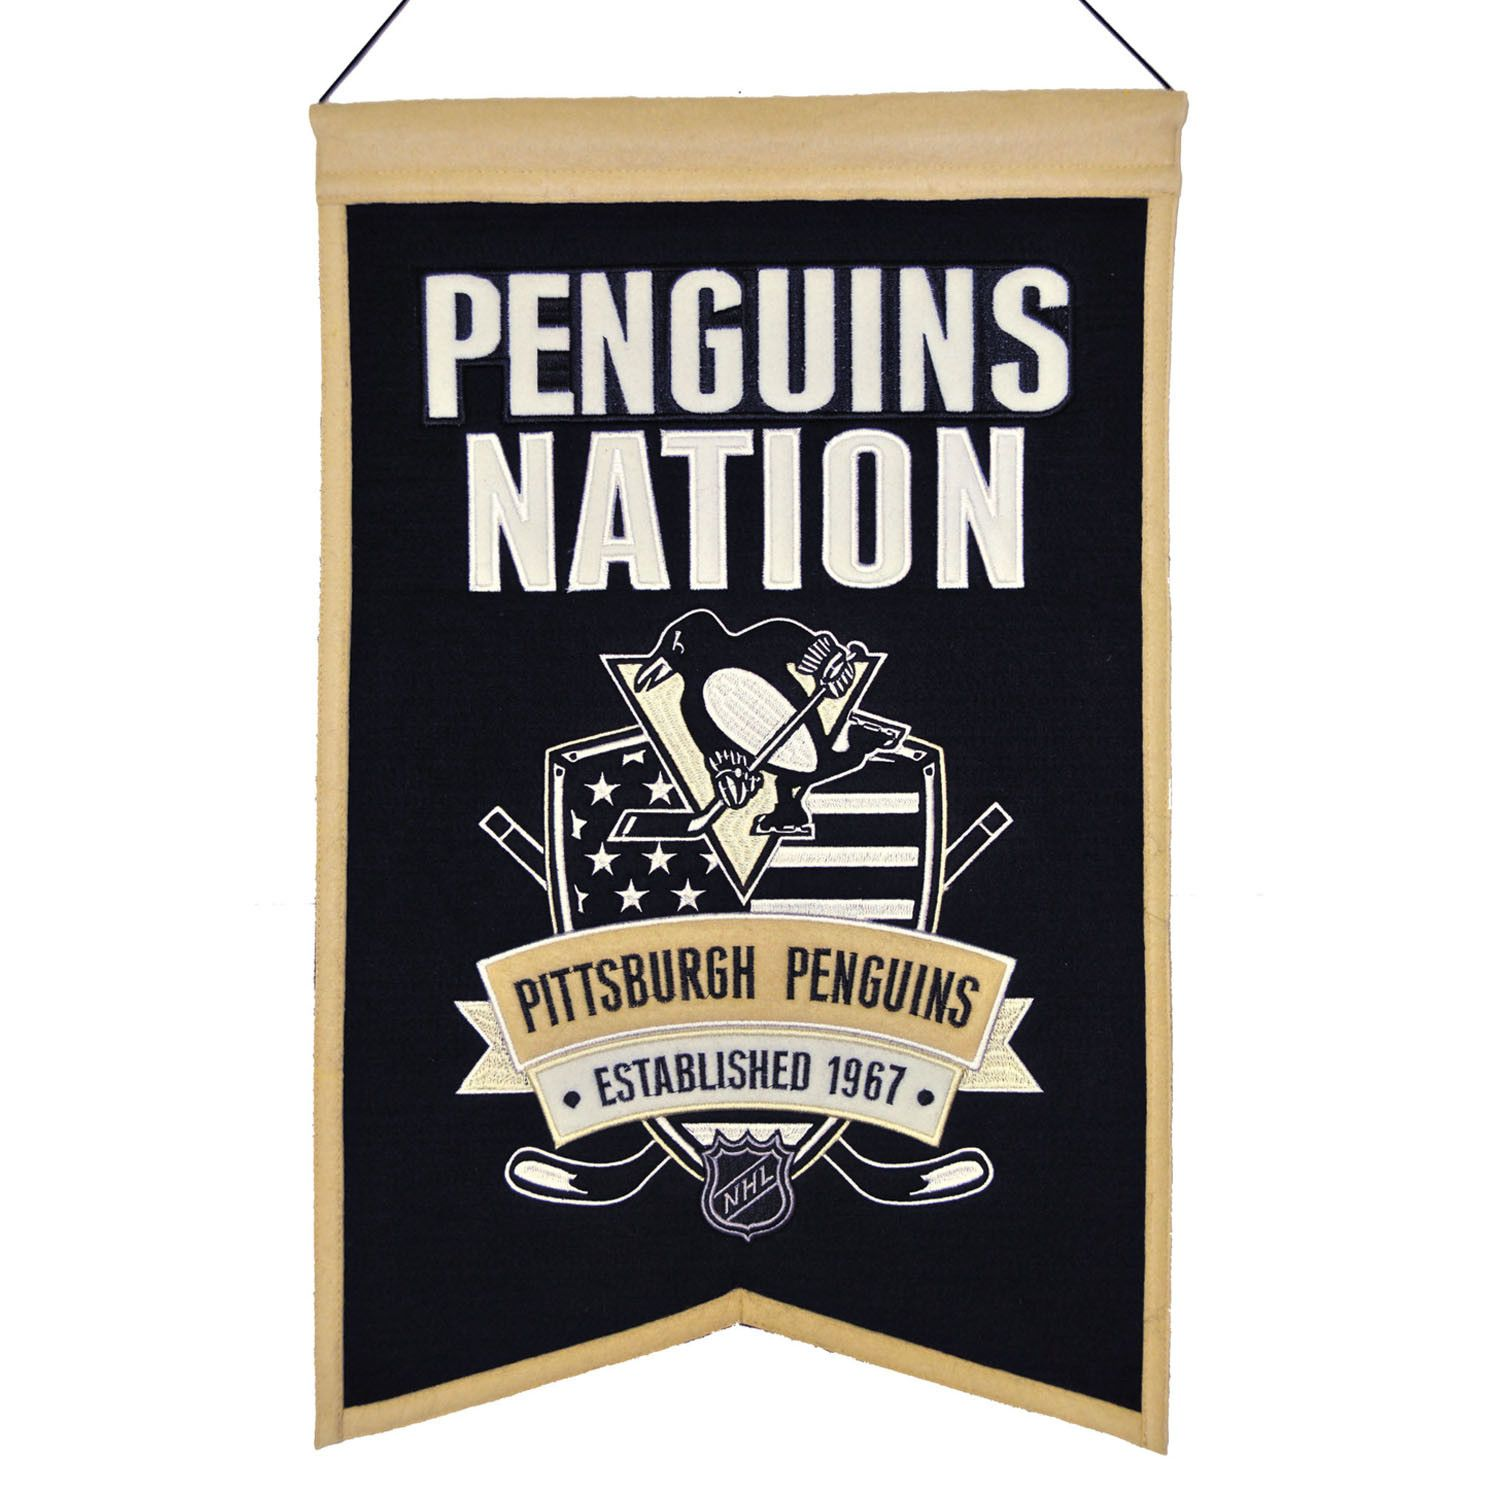 Decorate Your Office Or Game Room With A Banner That Shows Your Team Pride.  Each Nation Banner Combines A School Logo With A Well Known Phrase On A  Unique ...